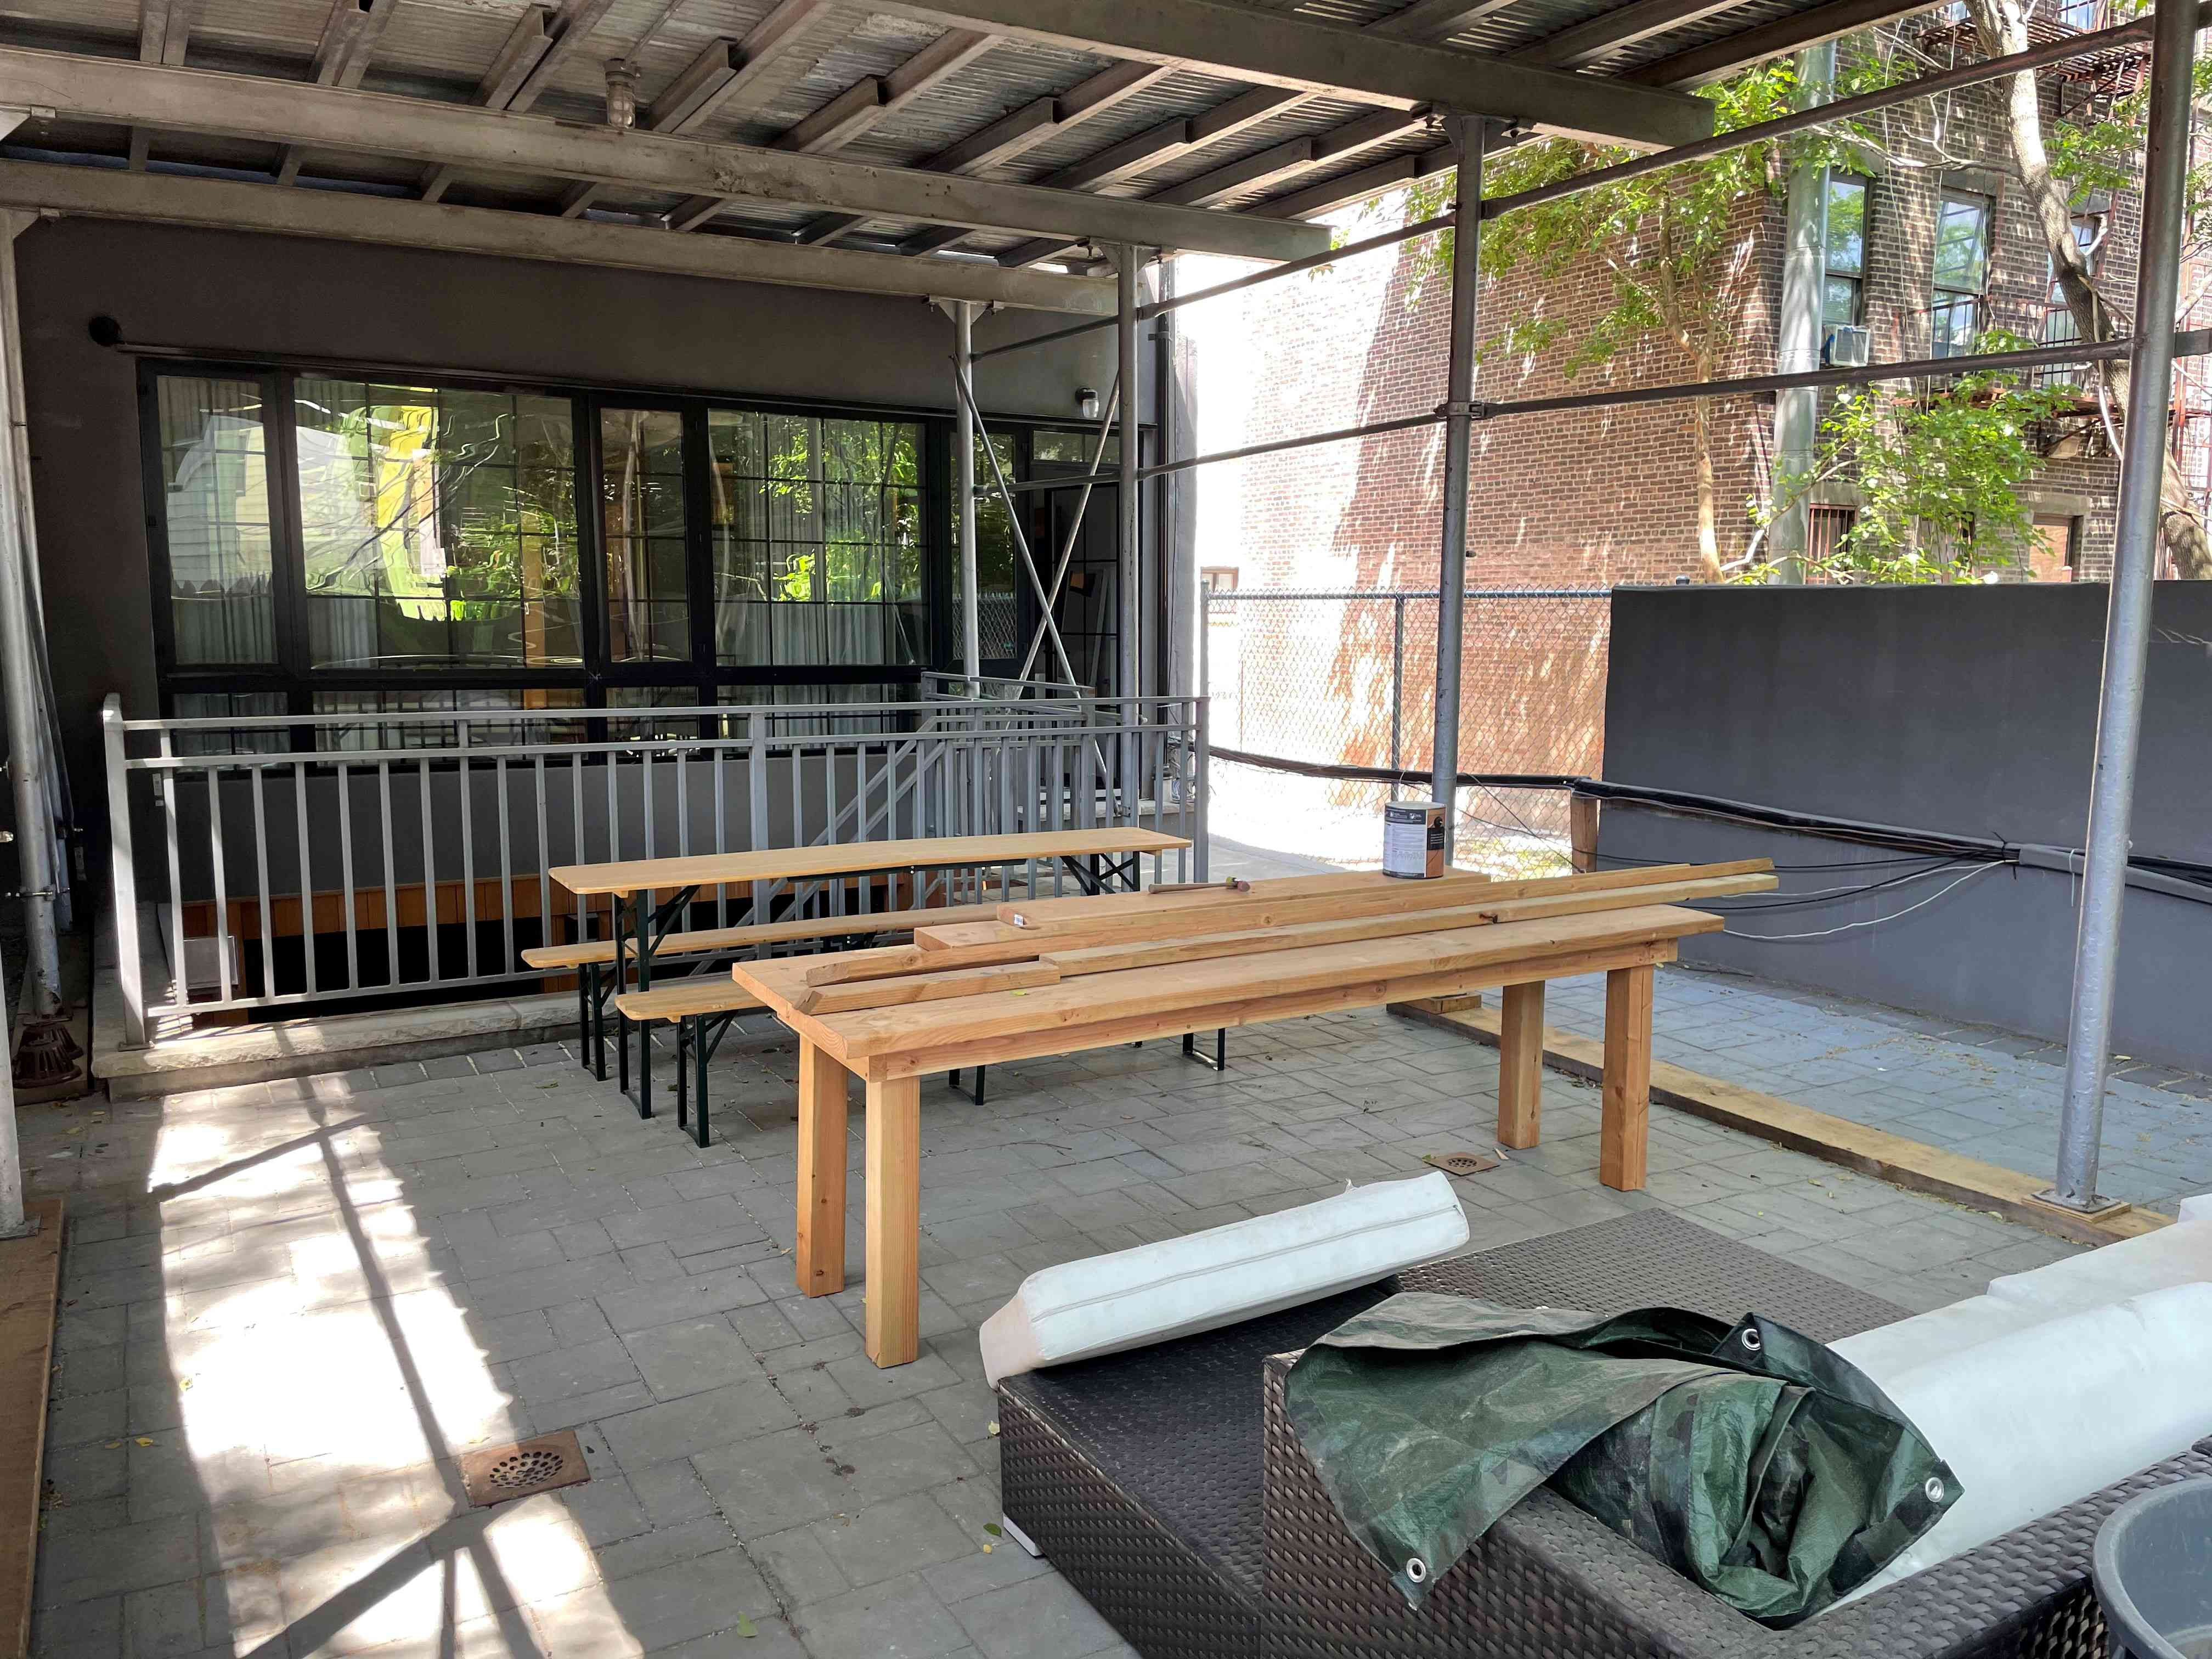 The construction site at Jamie Chung's Brooklyn backyard